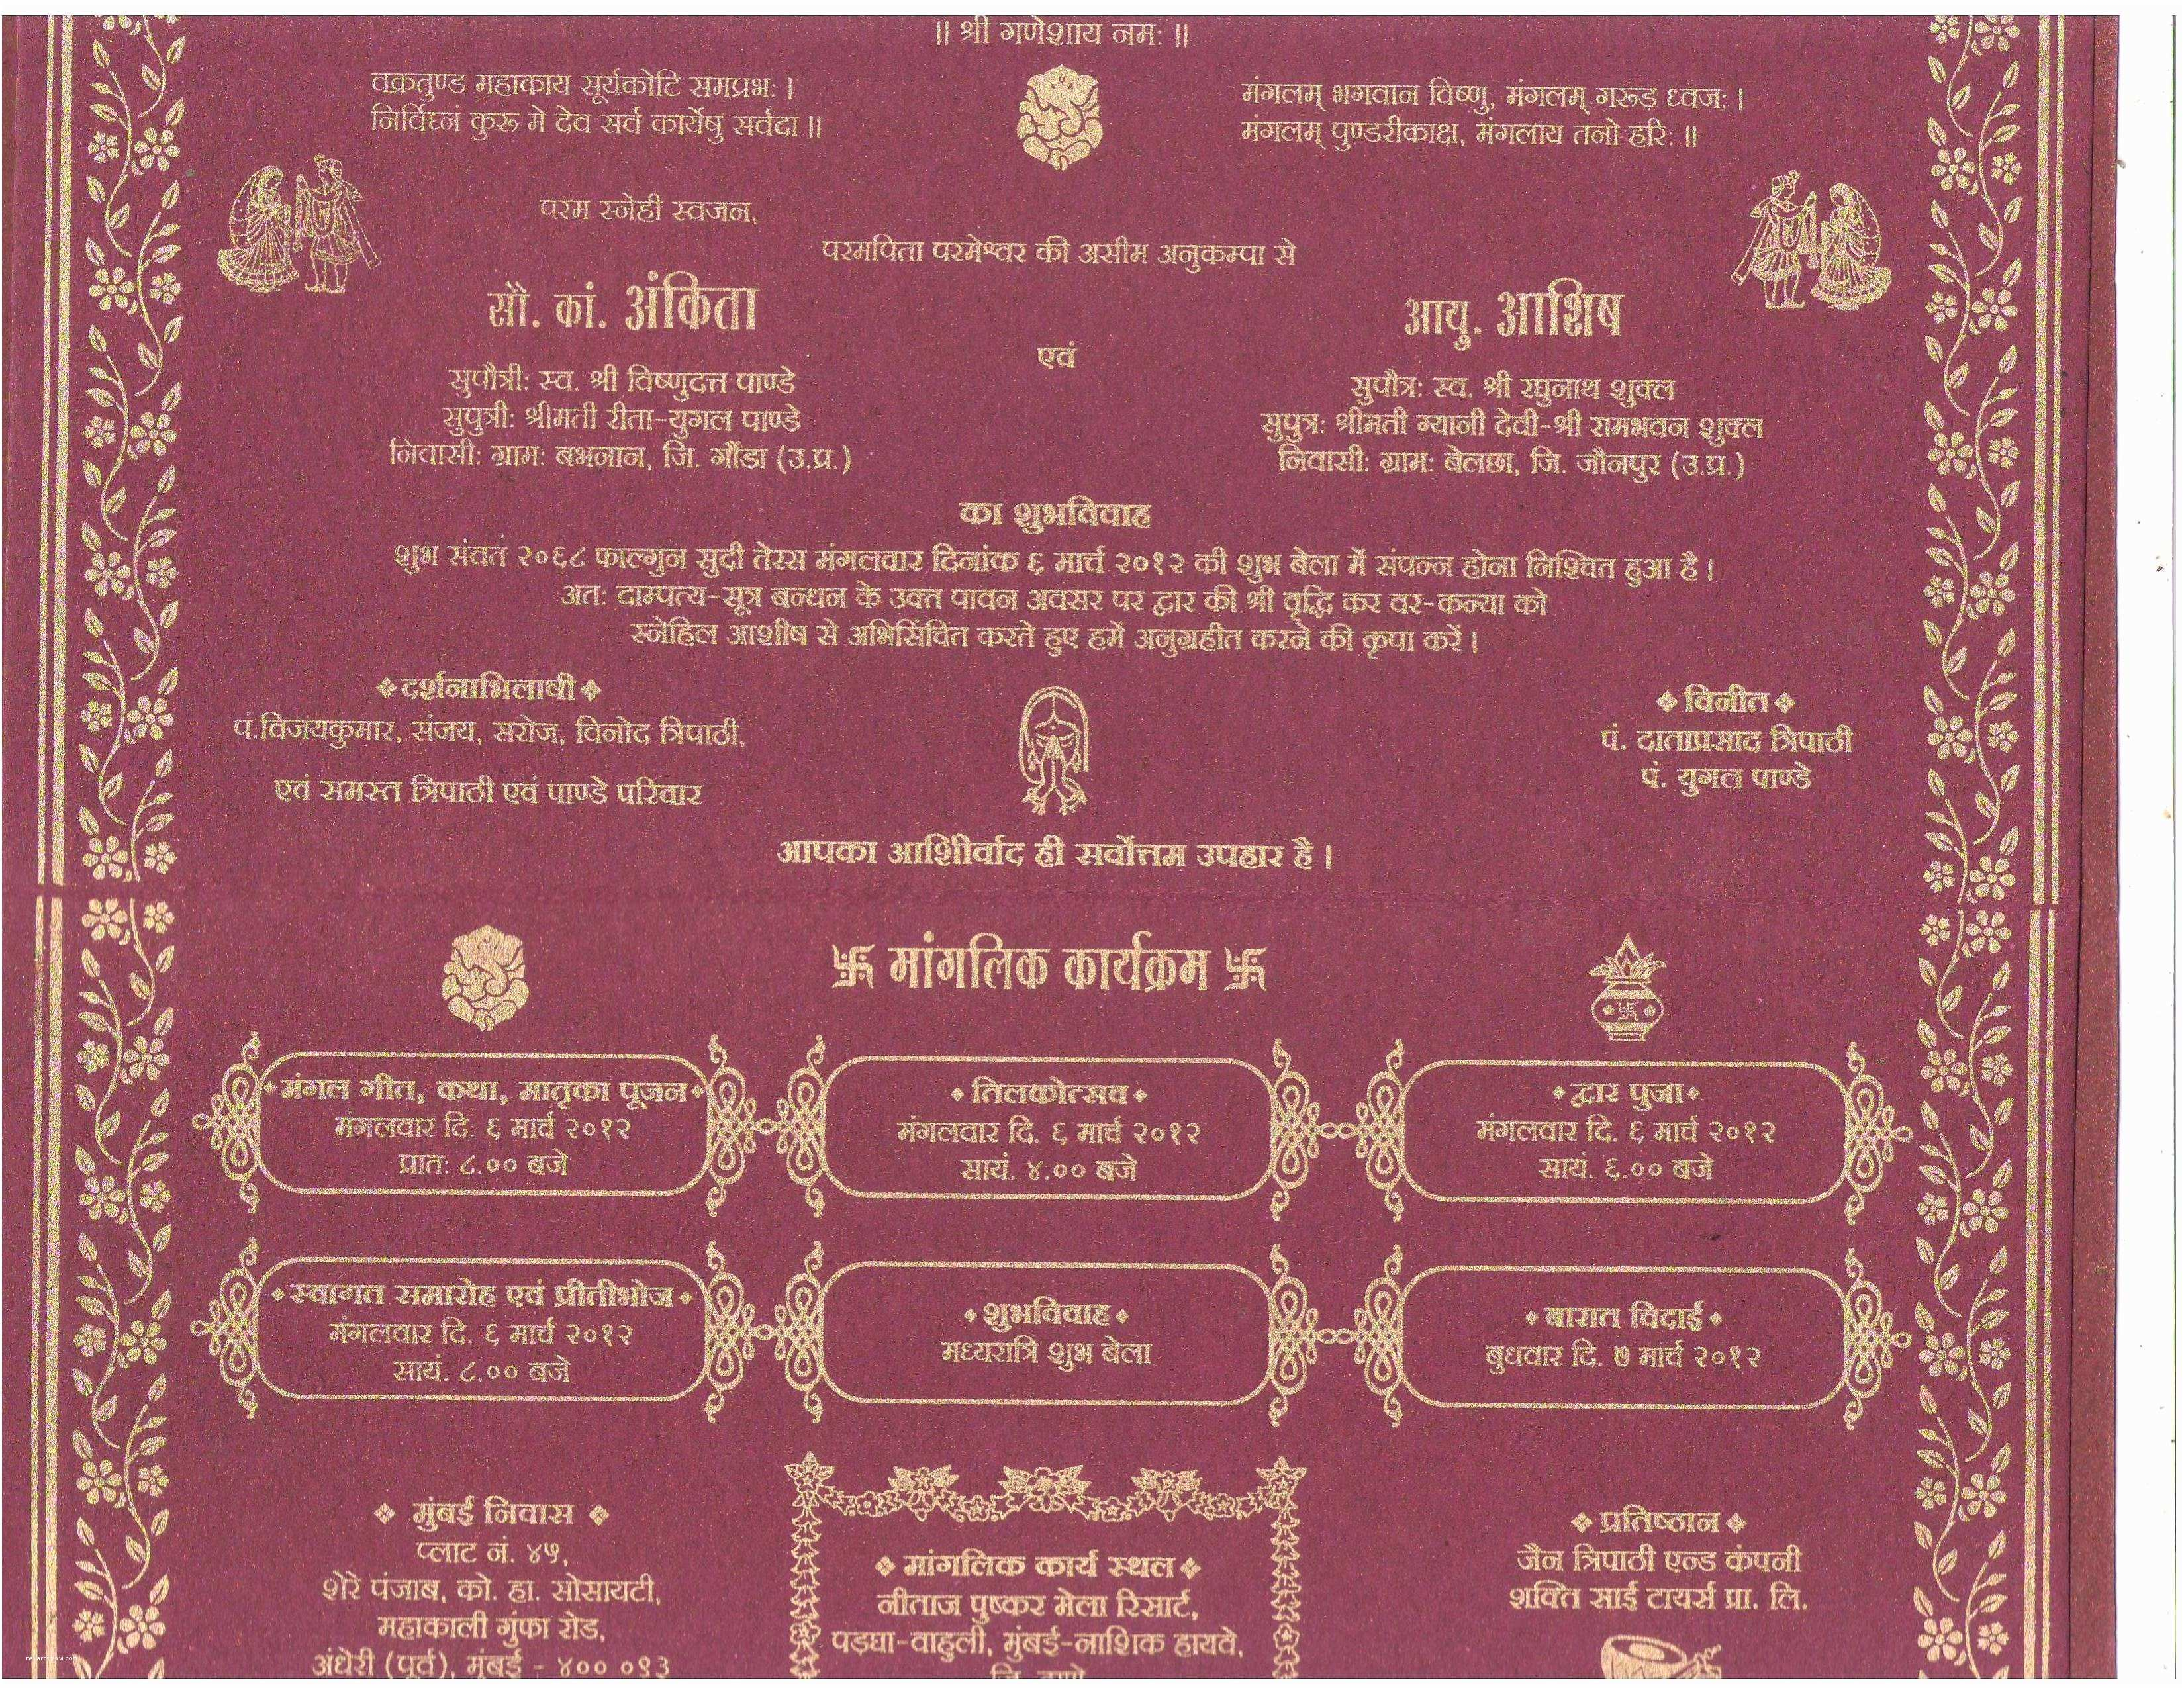 Wedding Invitation Sms Wedding Invitation Sms Mobile Word Template for Invoice